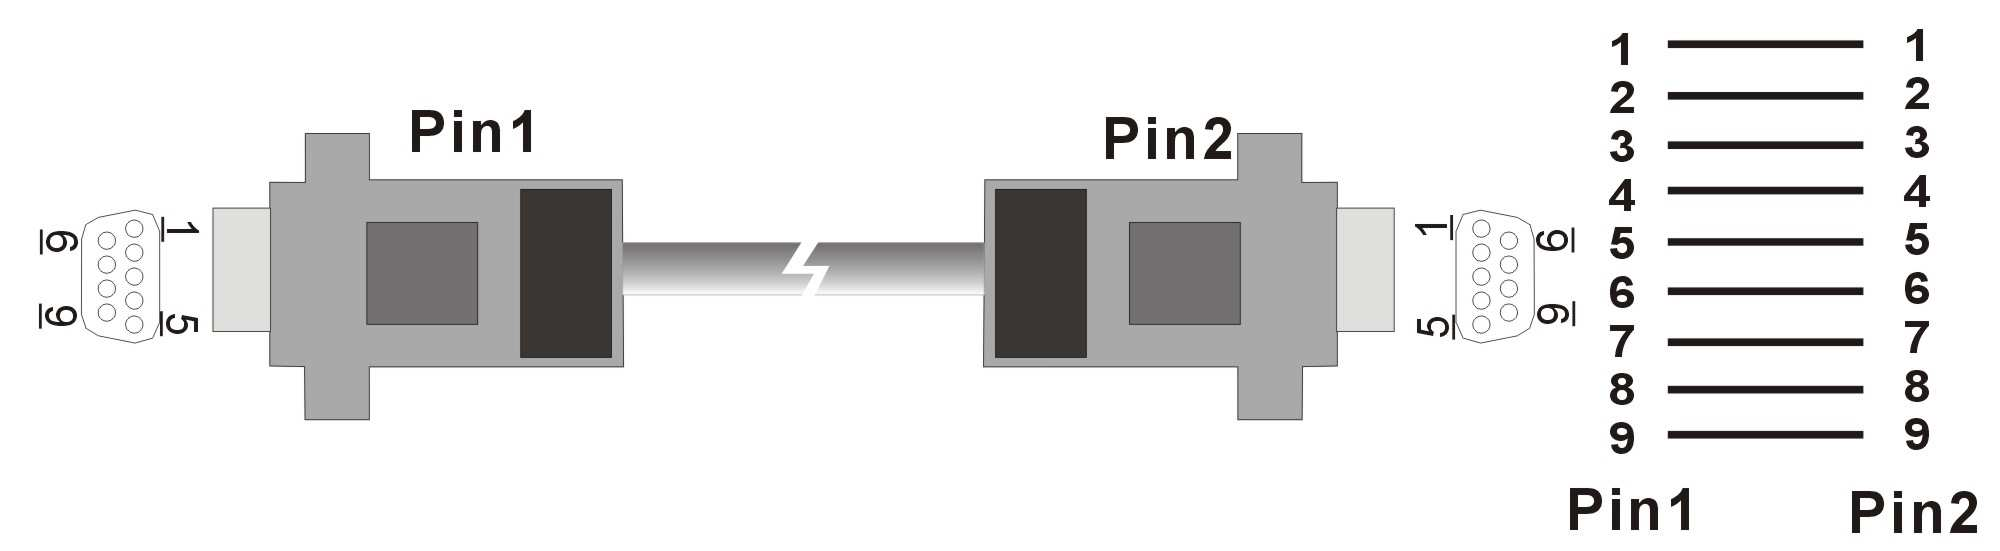 Table A-2 lists the pin assignments for the serial console interface connector.